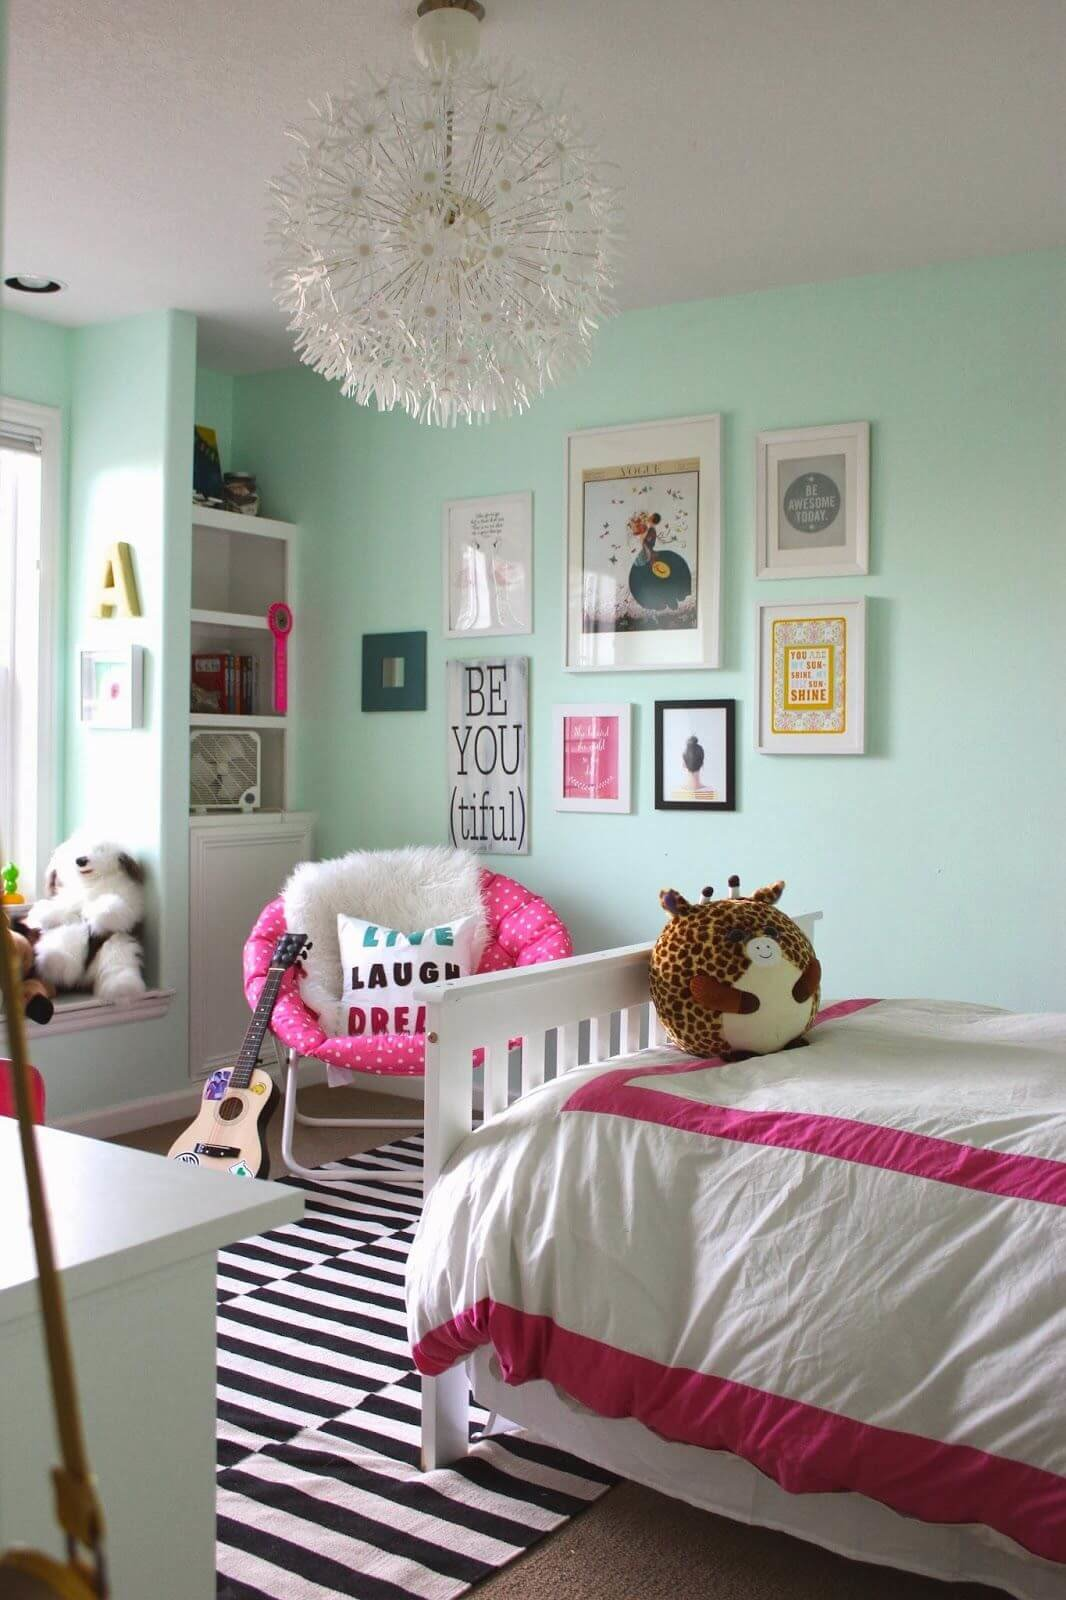 65+ Cute Teenage Girl Bedroom Ideas That Will Blow Your Mind on Teenage Bedroom Ideas  id=84554